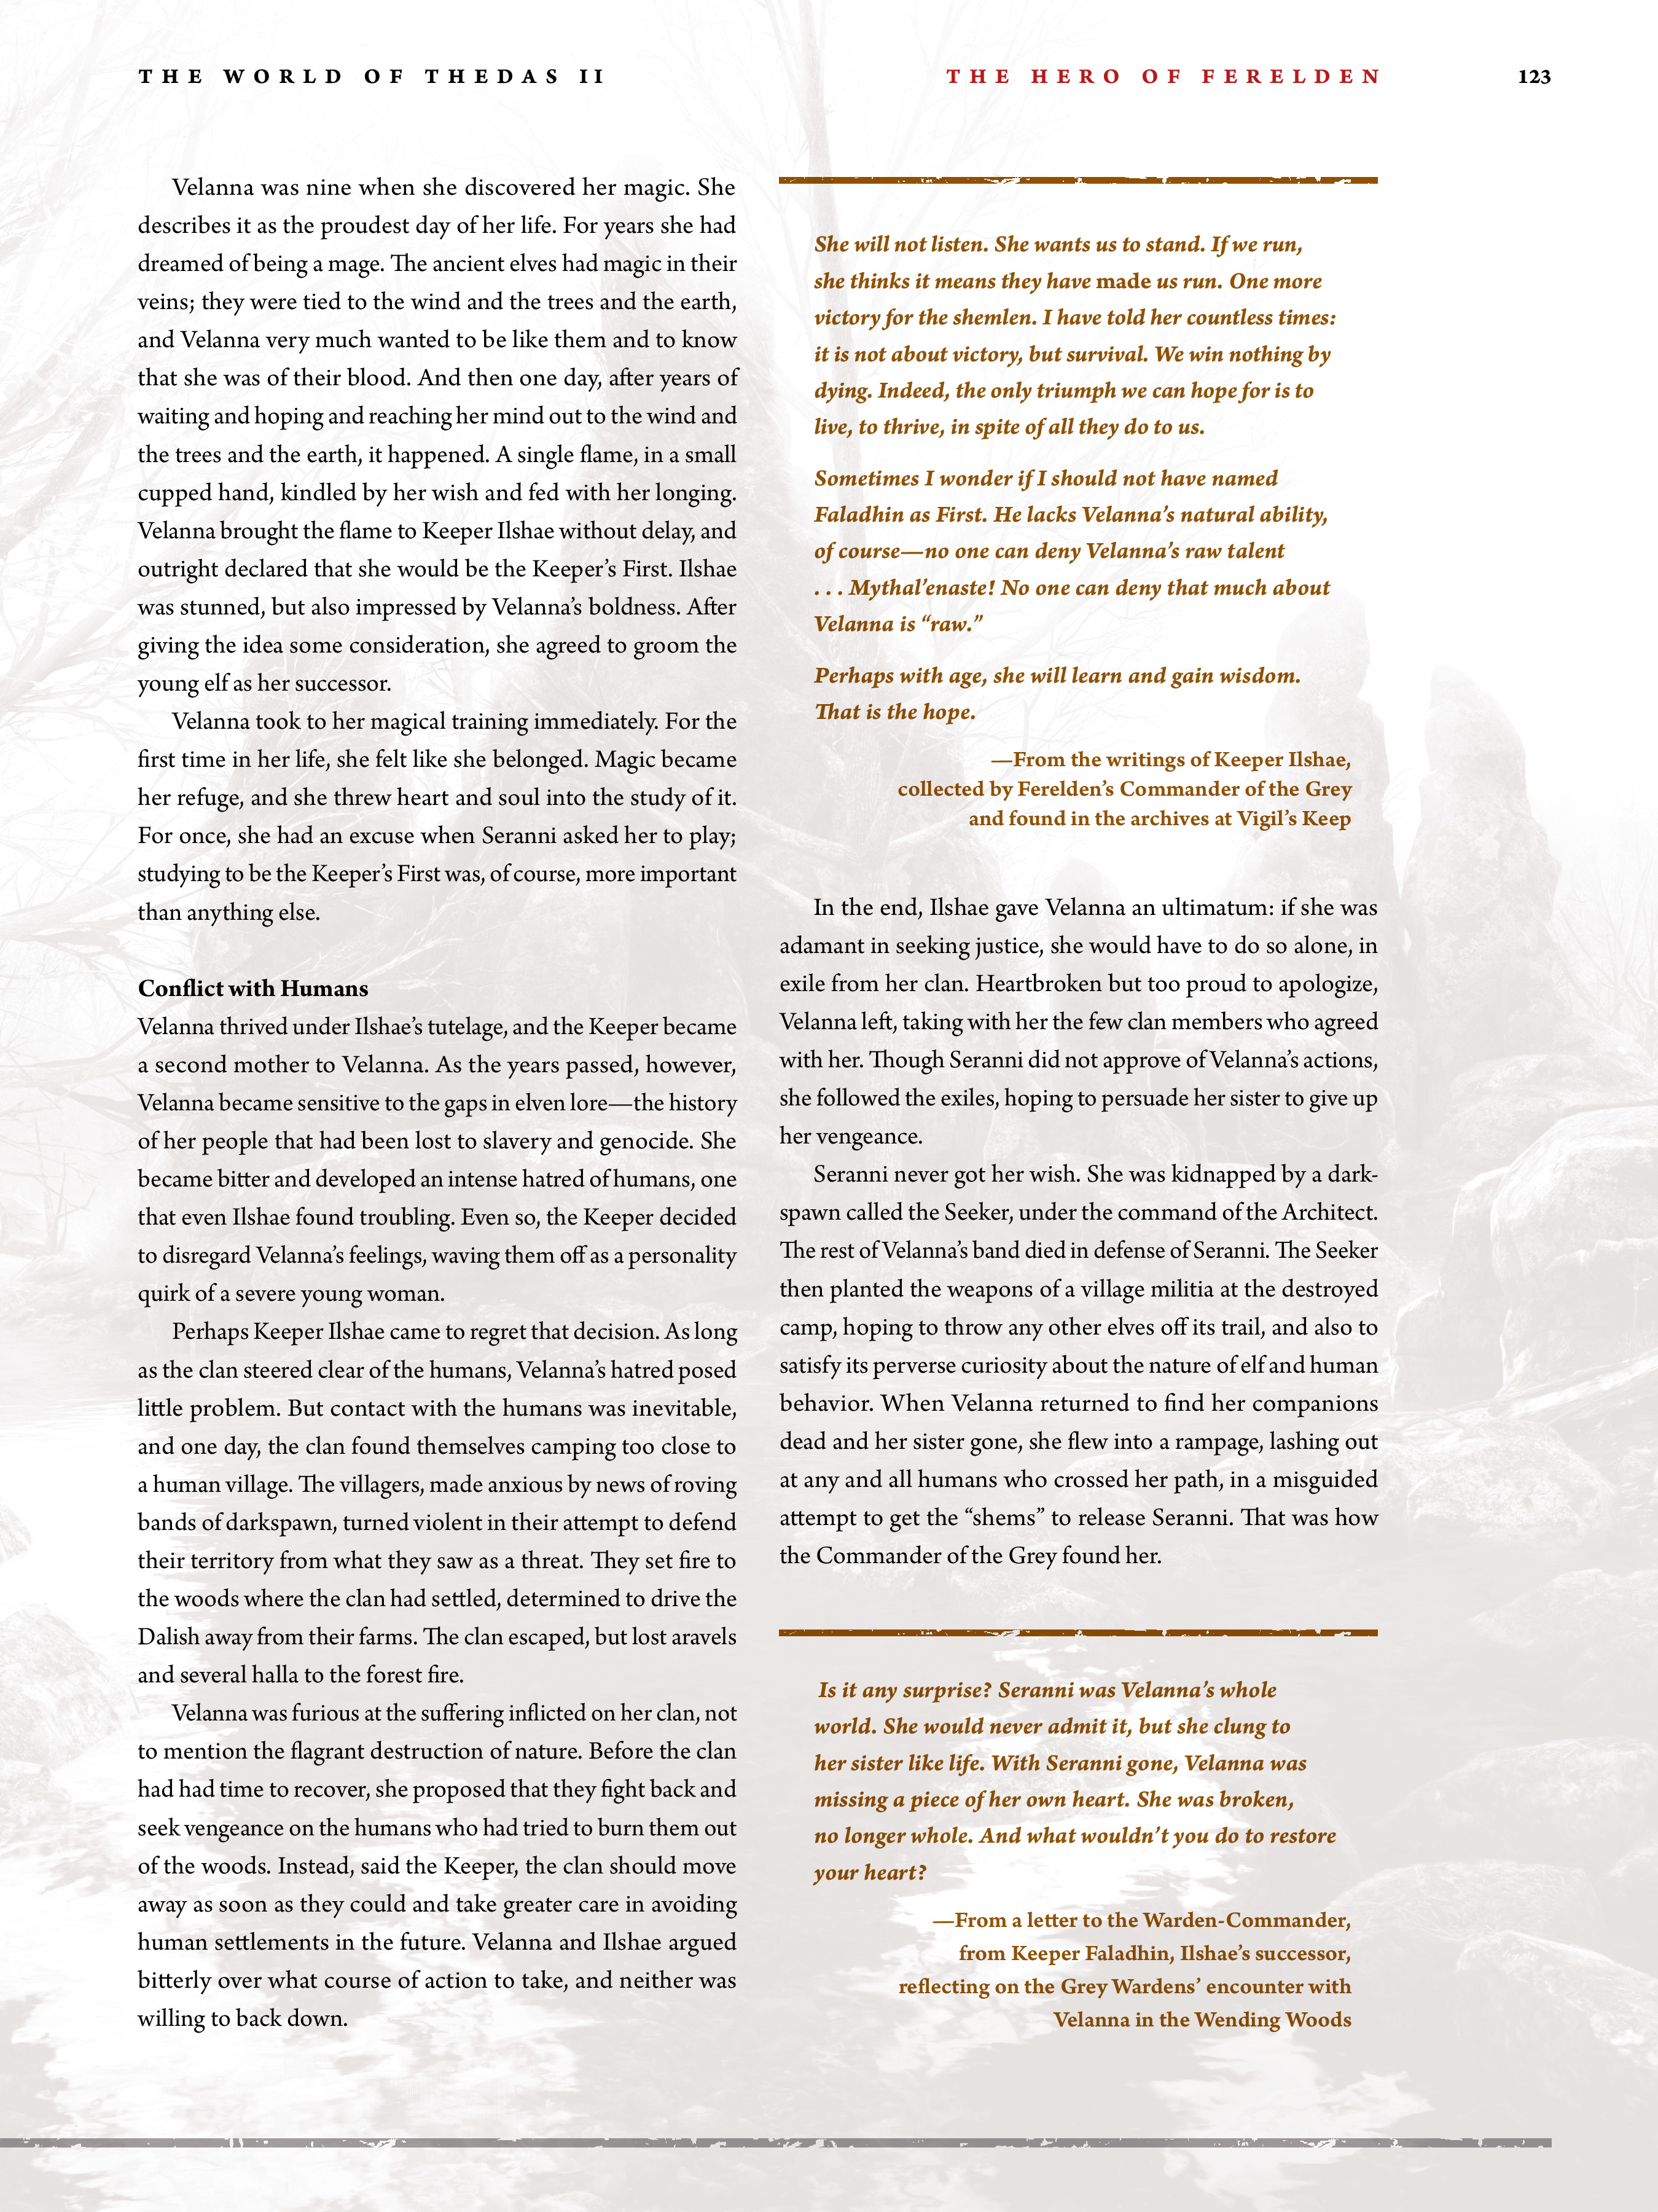 Read online Dragon Age: The World of Thedas comic -  Issue # TPB 2 - 119